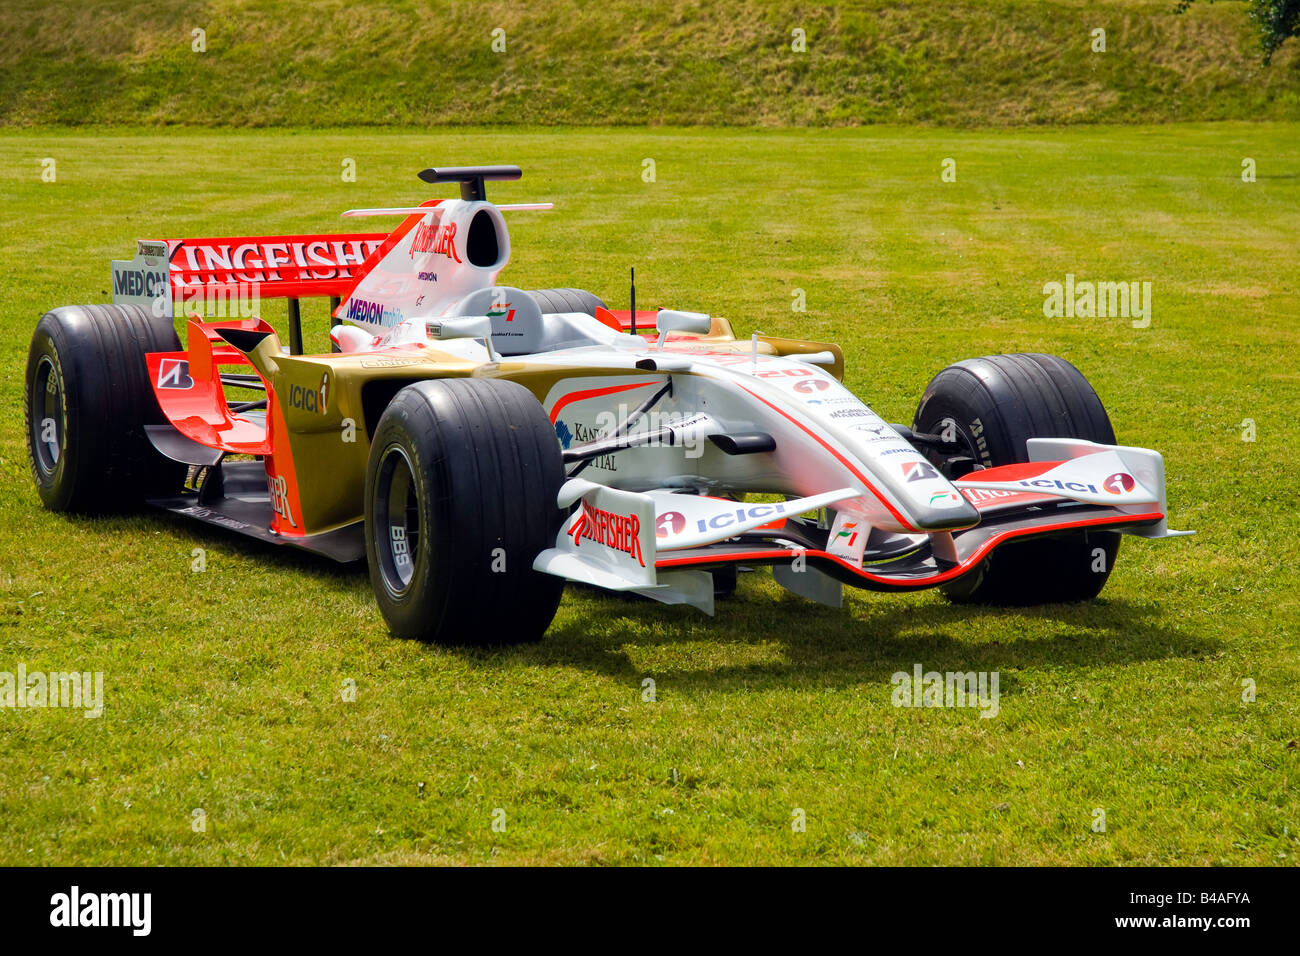 F1 motor sport de Fórmula uno Force India Kingfisher Imagen De Stock